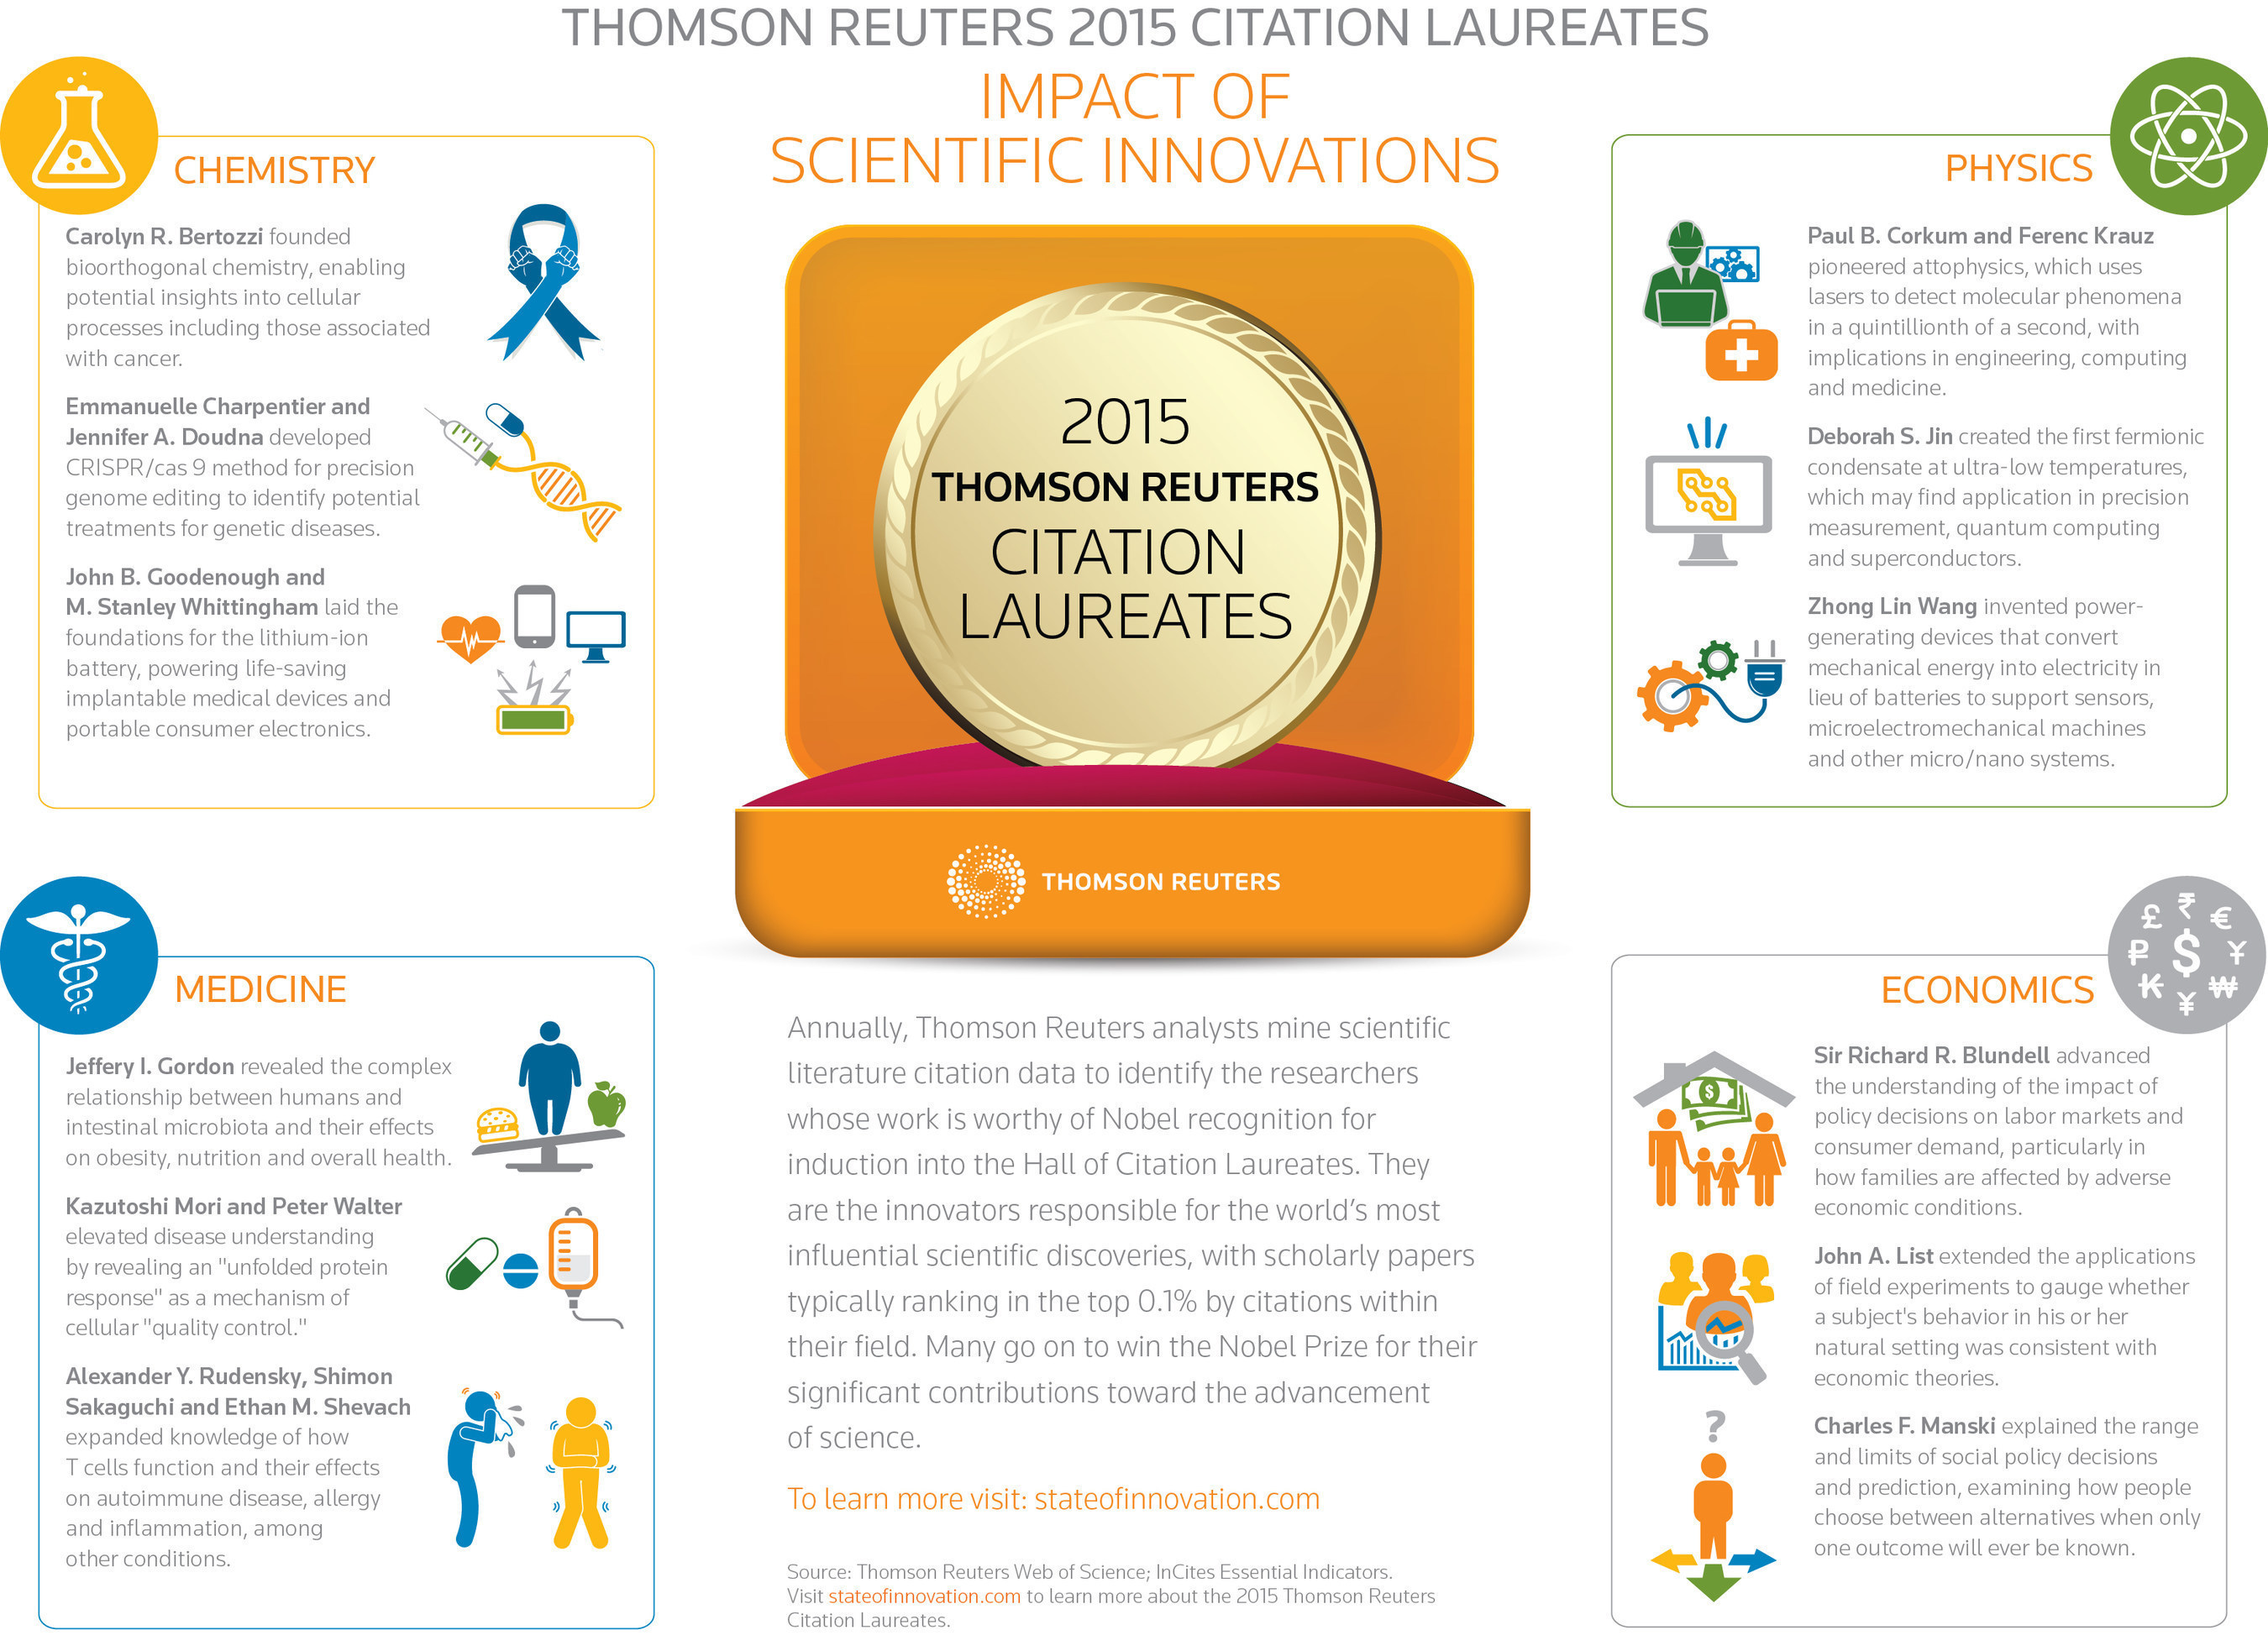 Thomson Reuters announces the 2015 Citation Laureates, candidates for Nobel Prizes this year. Go to stateofinnovation.com. Vote at http://tmsnrt.rs/1KuVWP6.